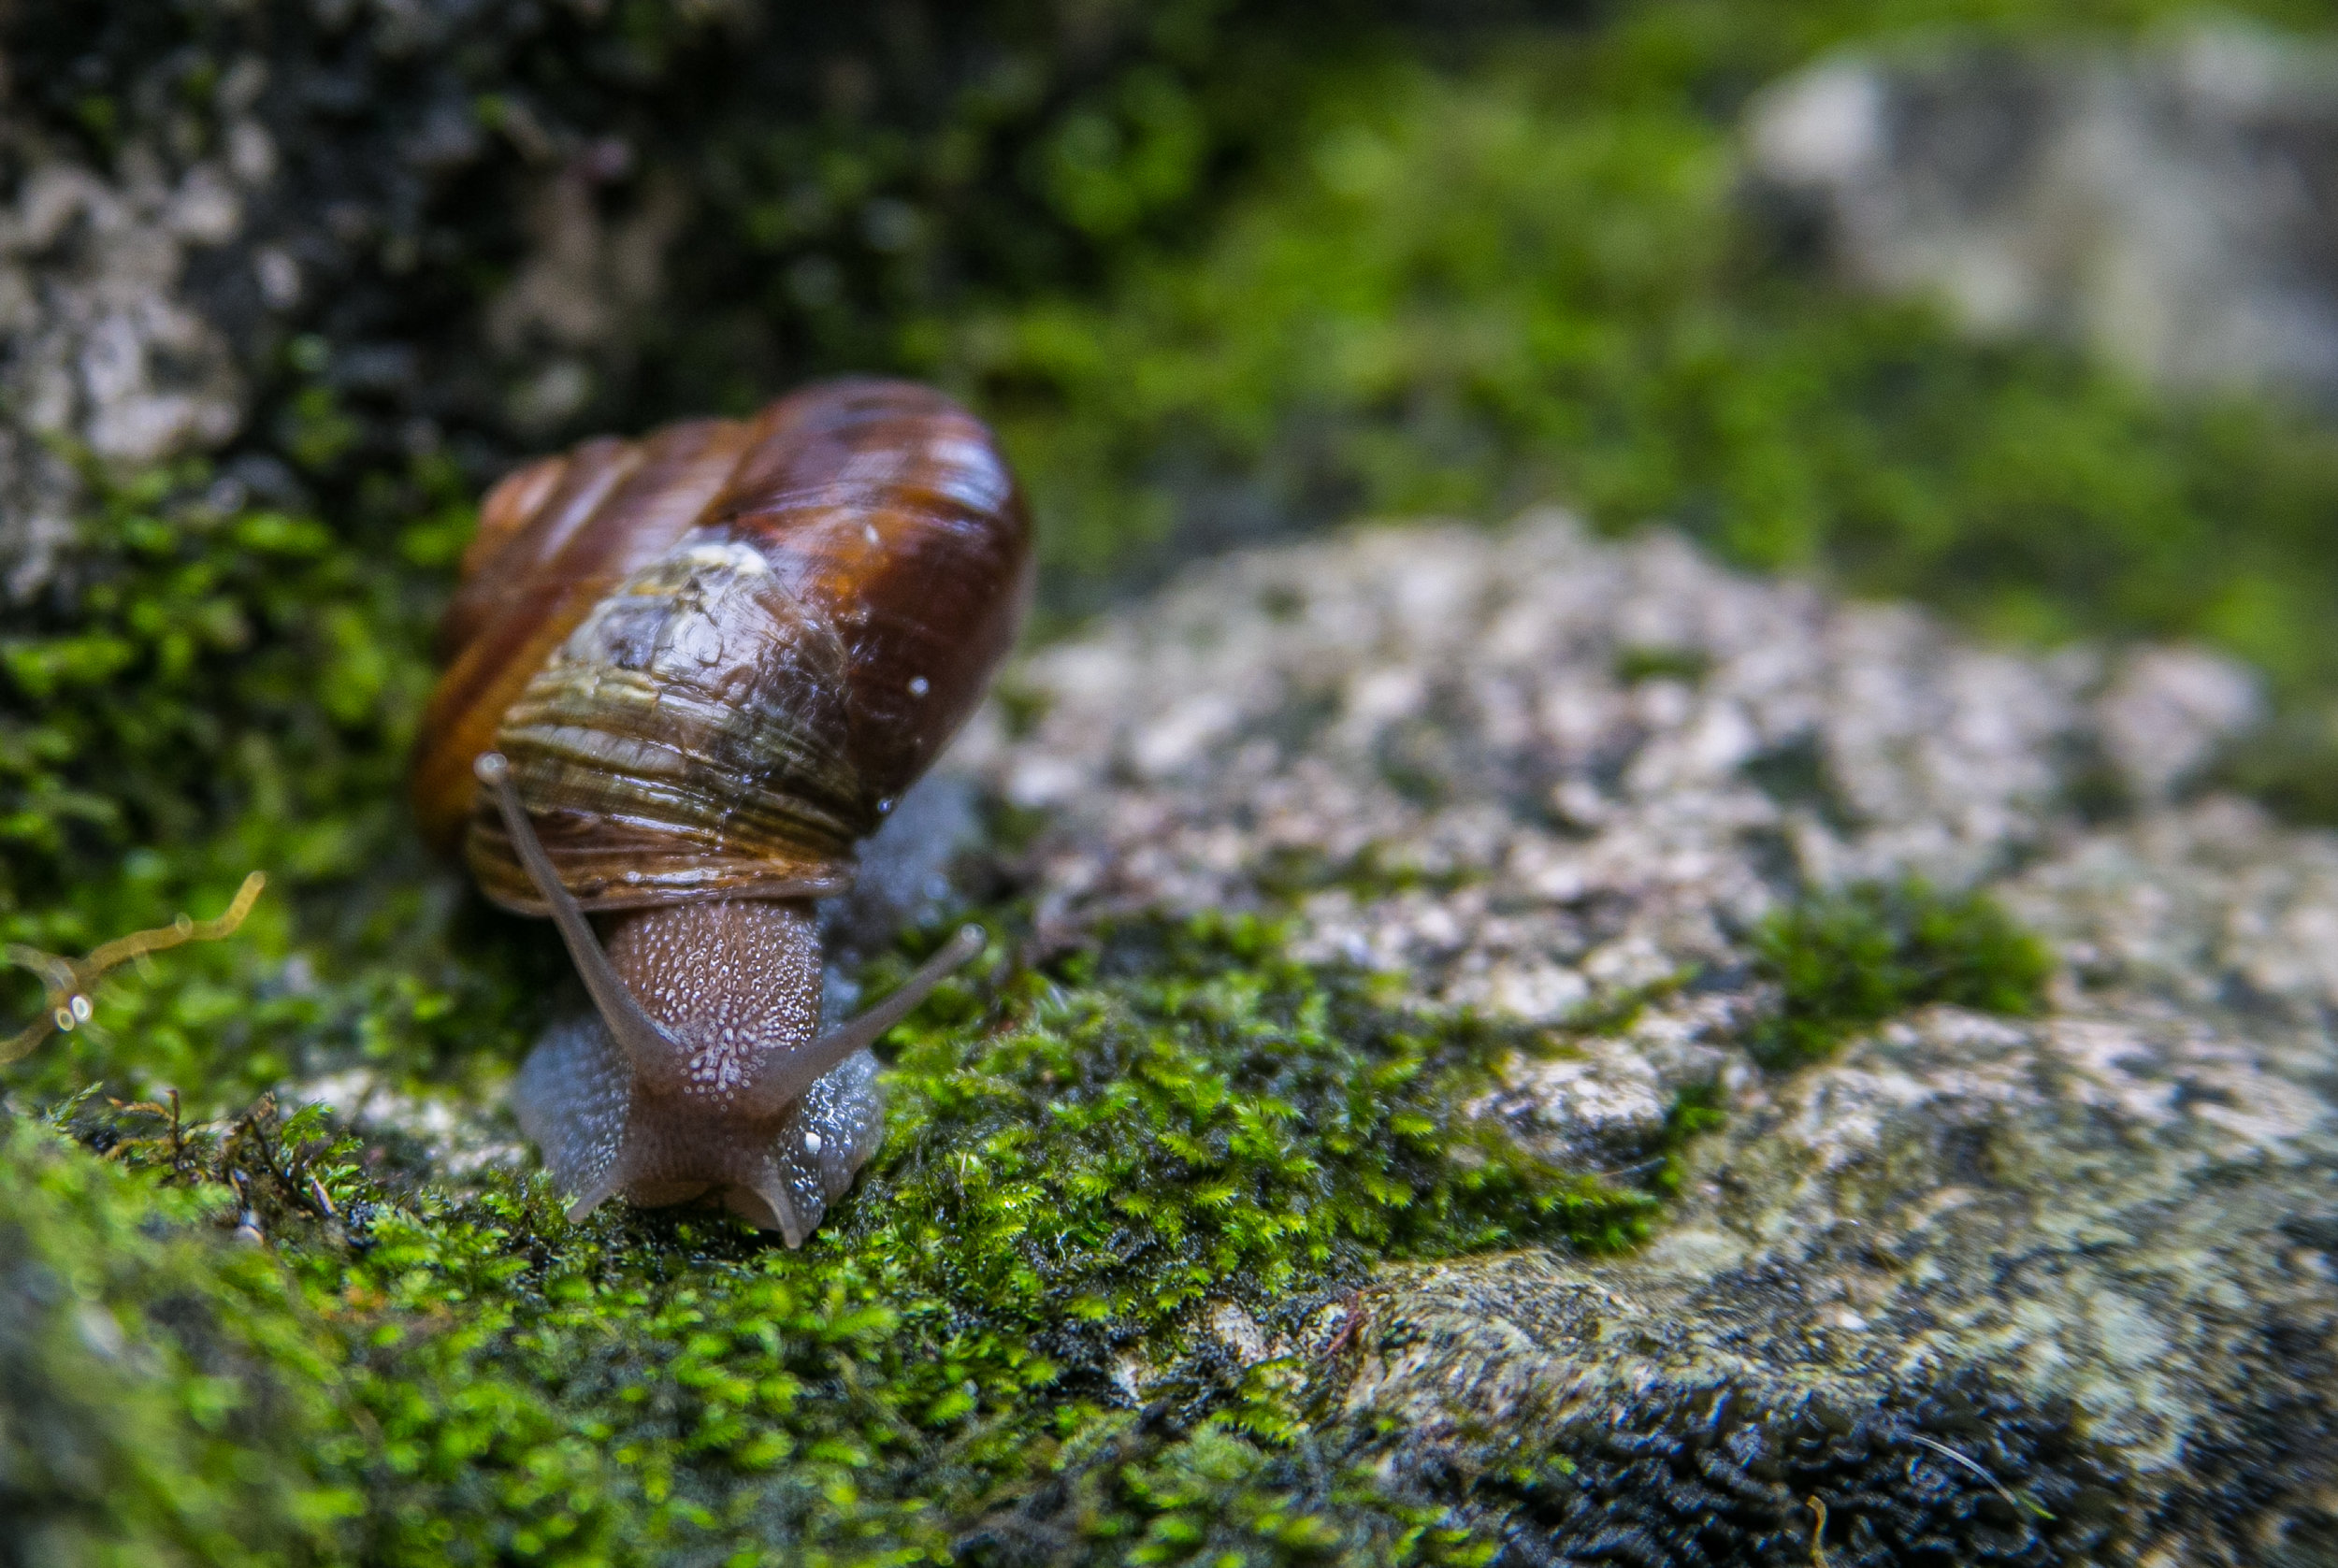 The snail is taken to safety on a mossy wall.